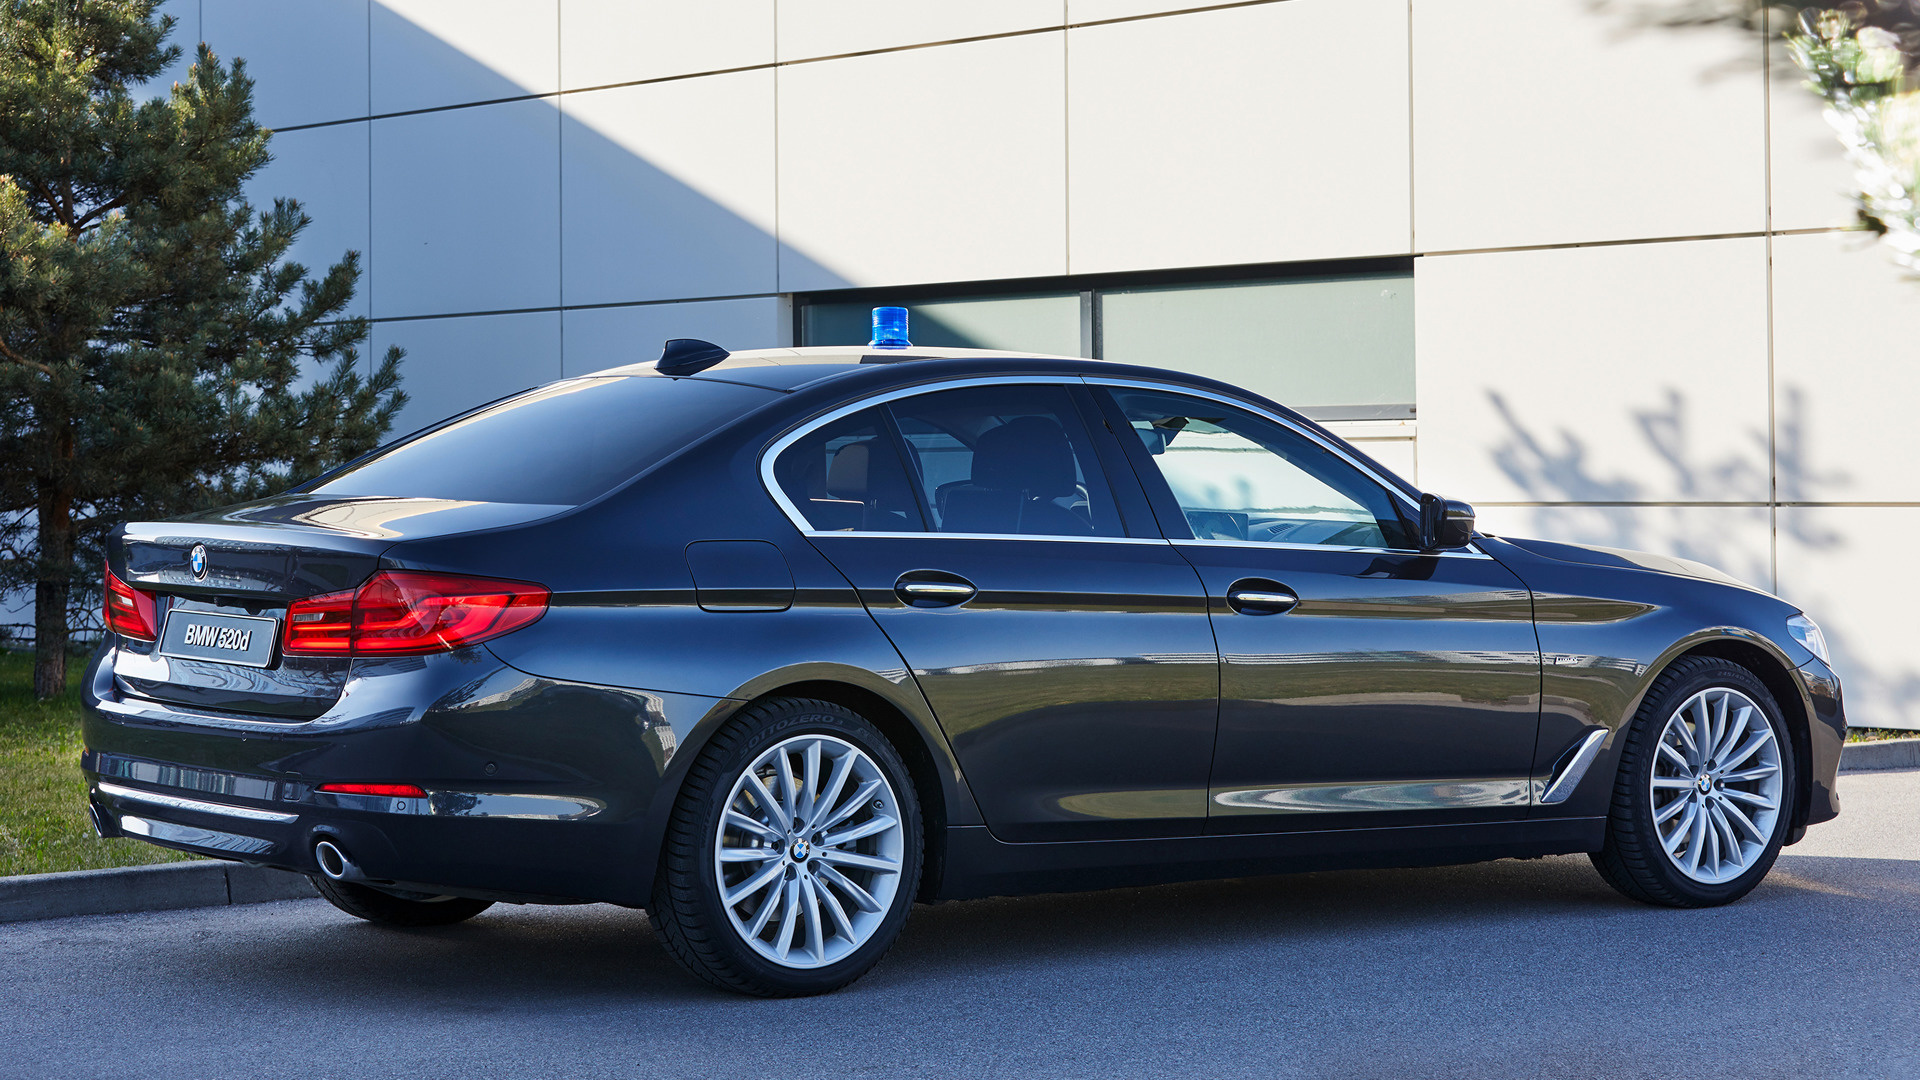 2017 BMW 5 Series Security - Wallpapers and HD Images ...